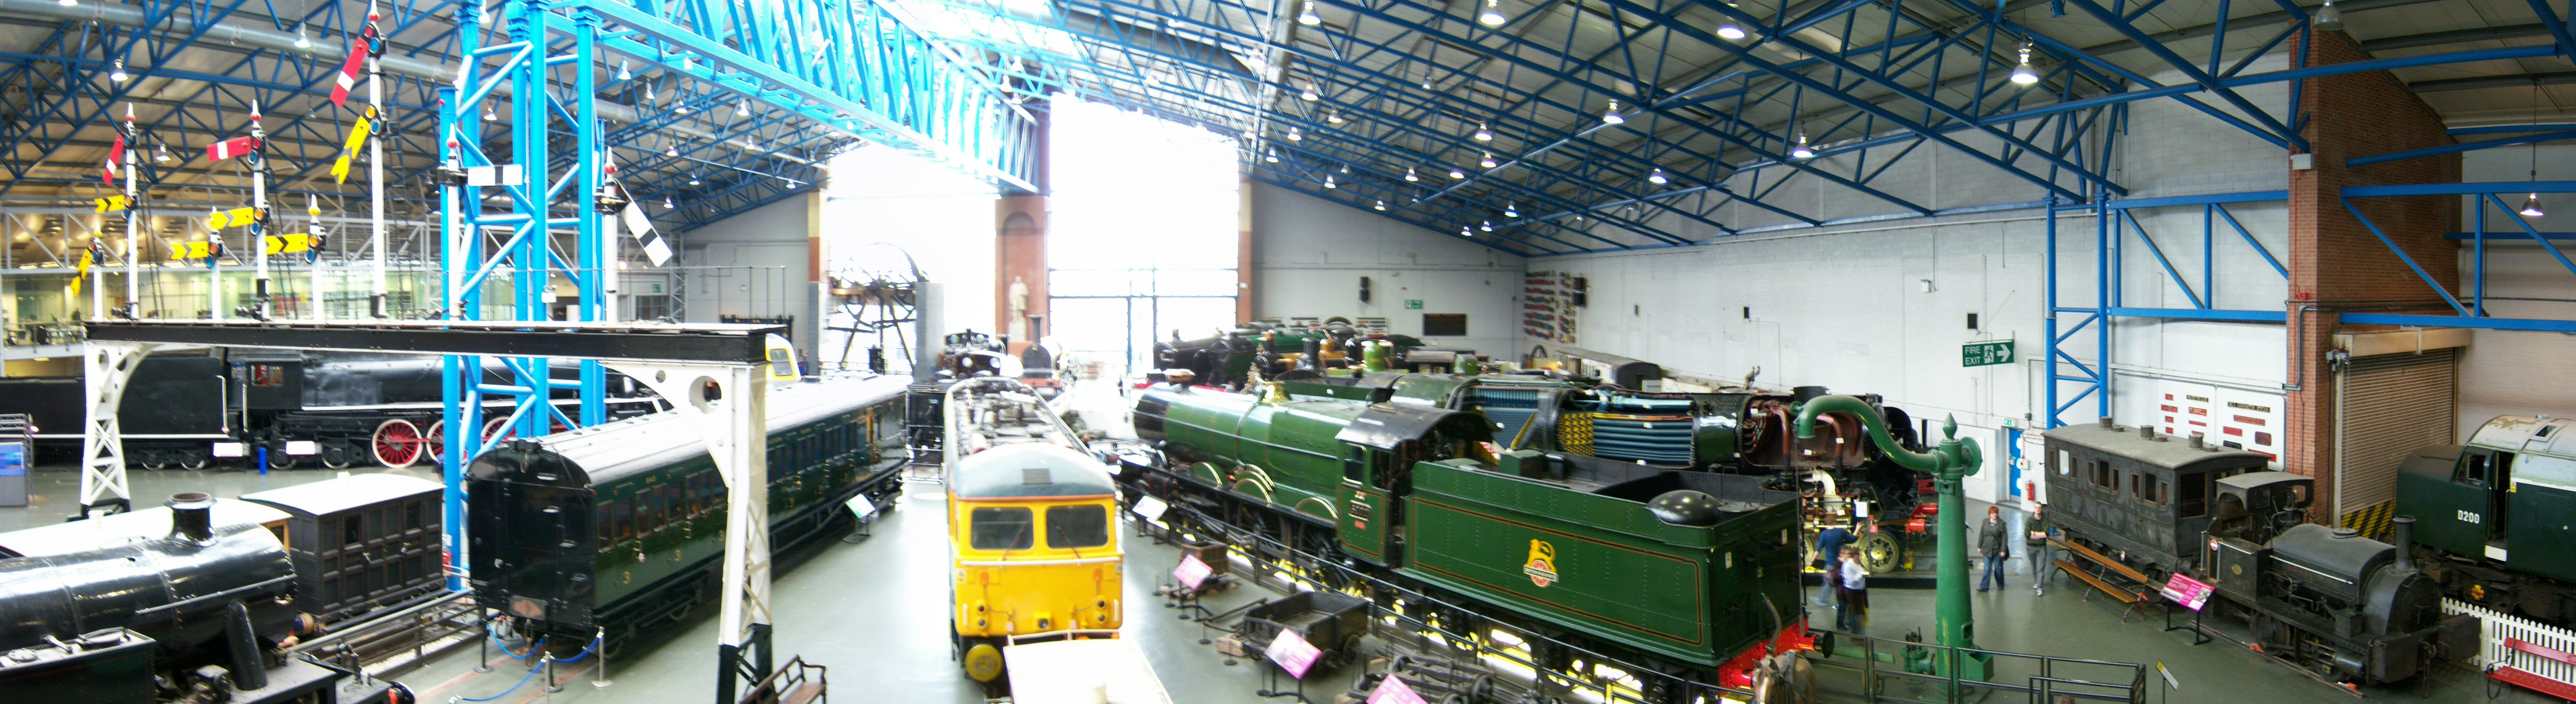 National_Railway_Museum_York_15_March_2009_Great_Hall_panorama_3